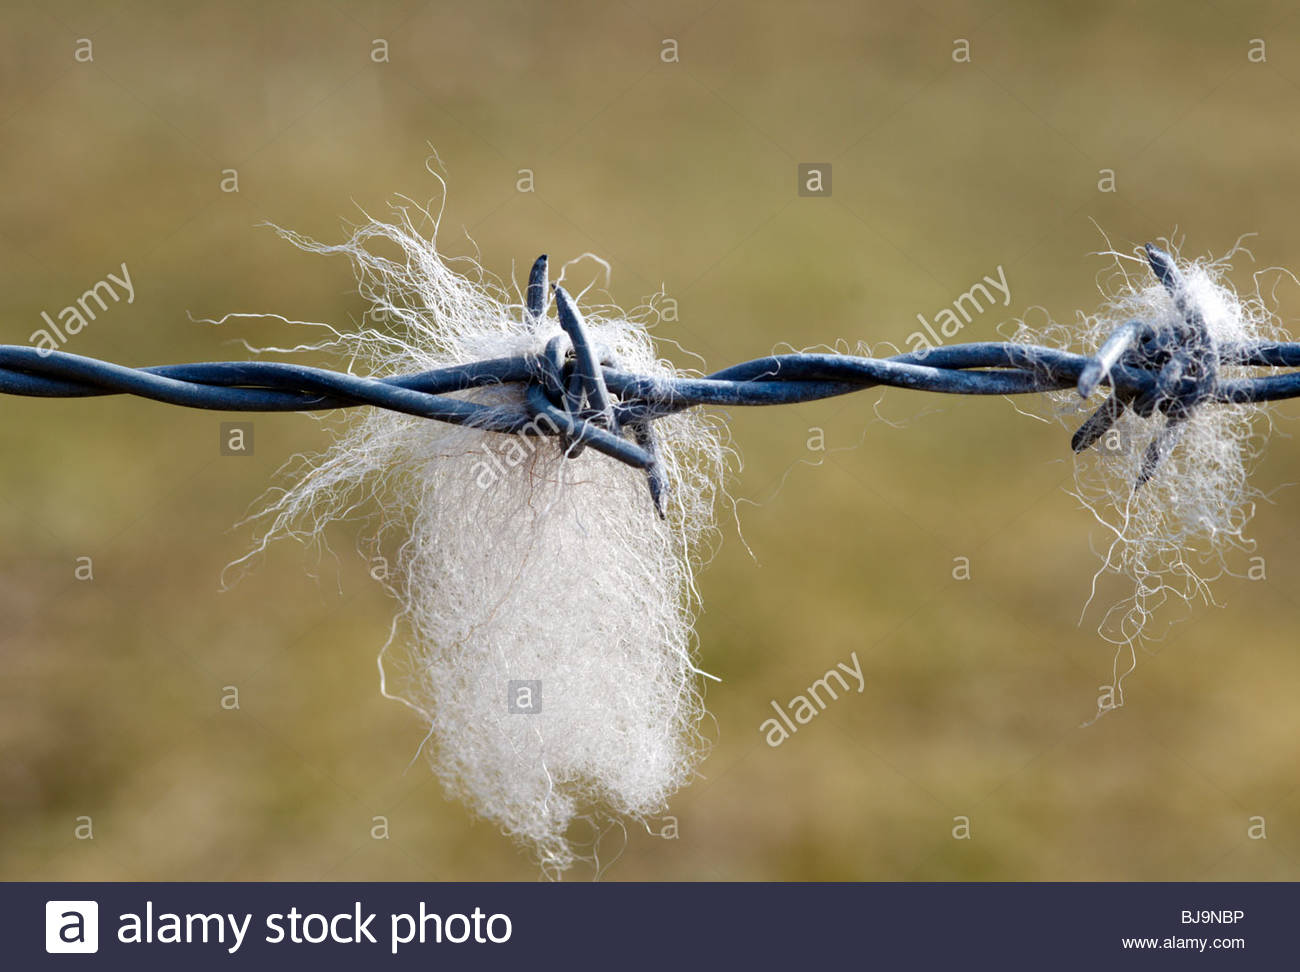 tufts of sheep's wool snagged on a metal barbed wire fence - Stock Image